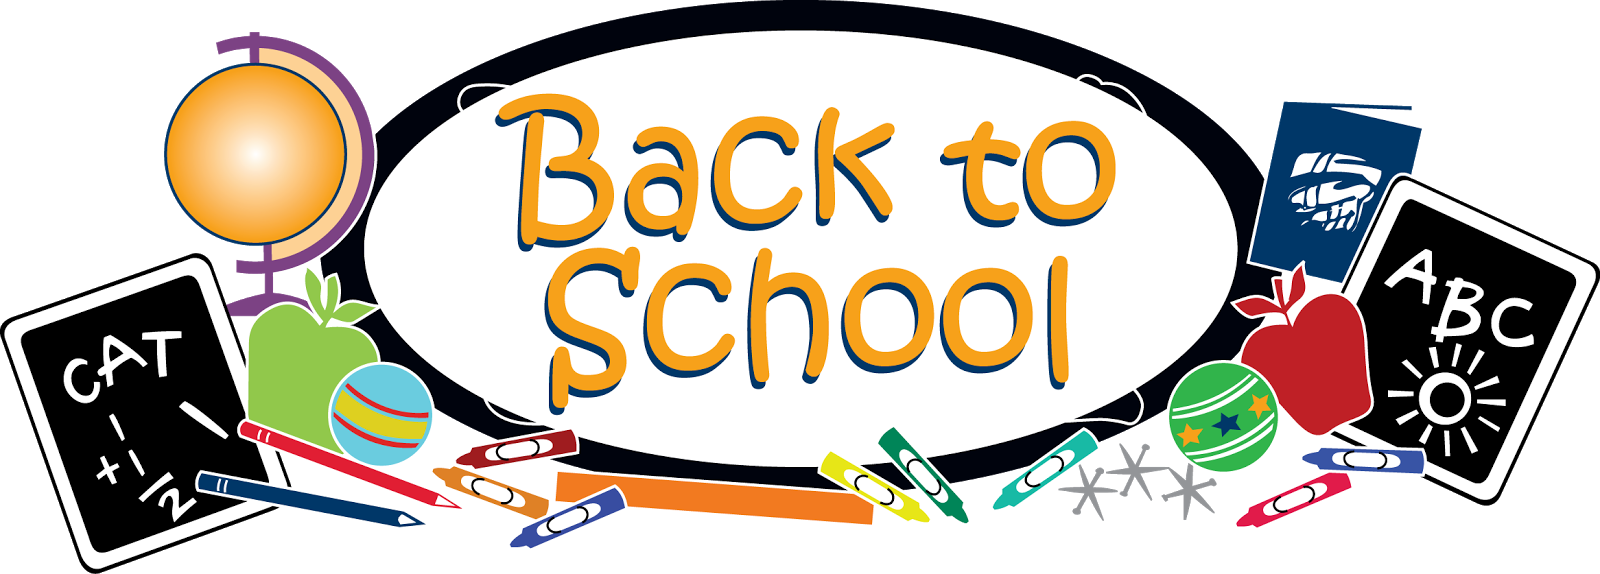 back-to-school-png-2.png